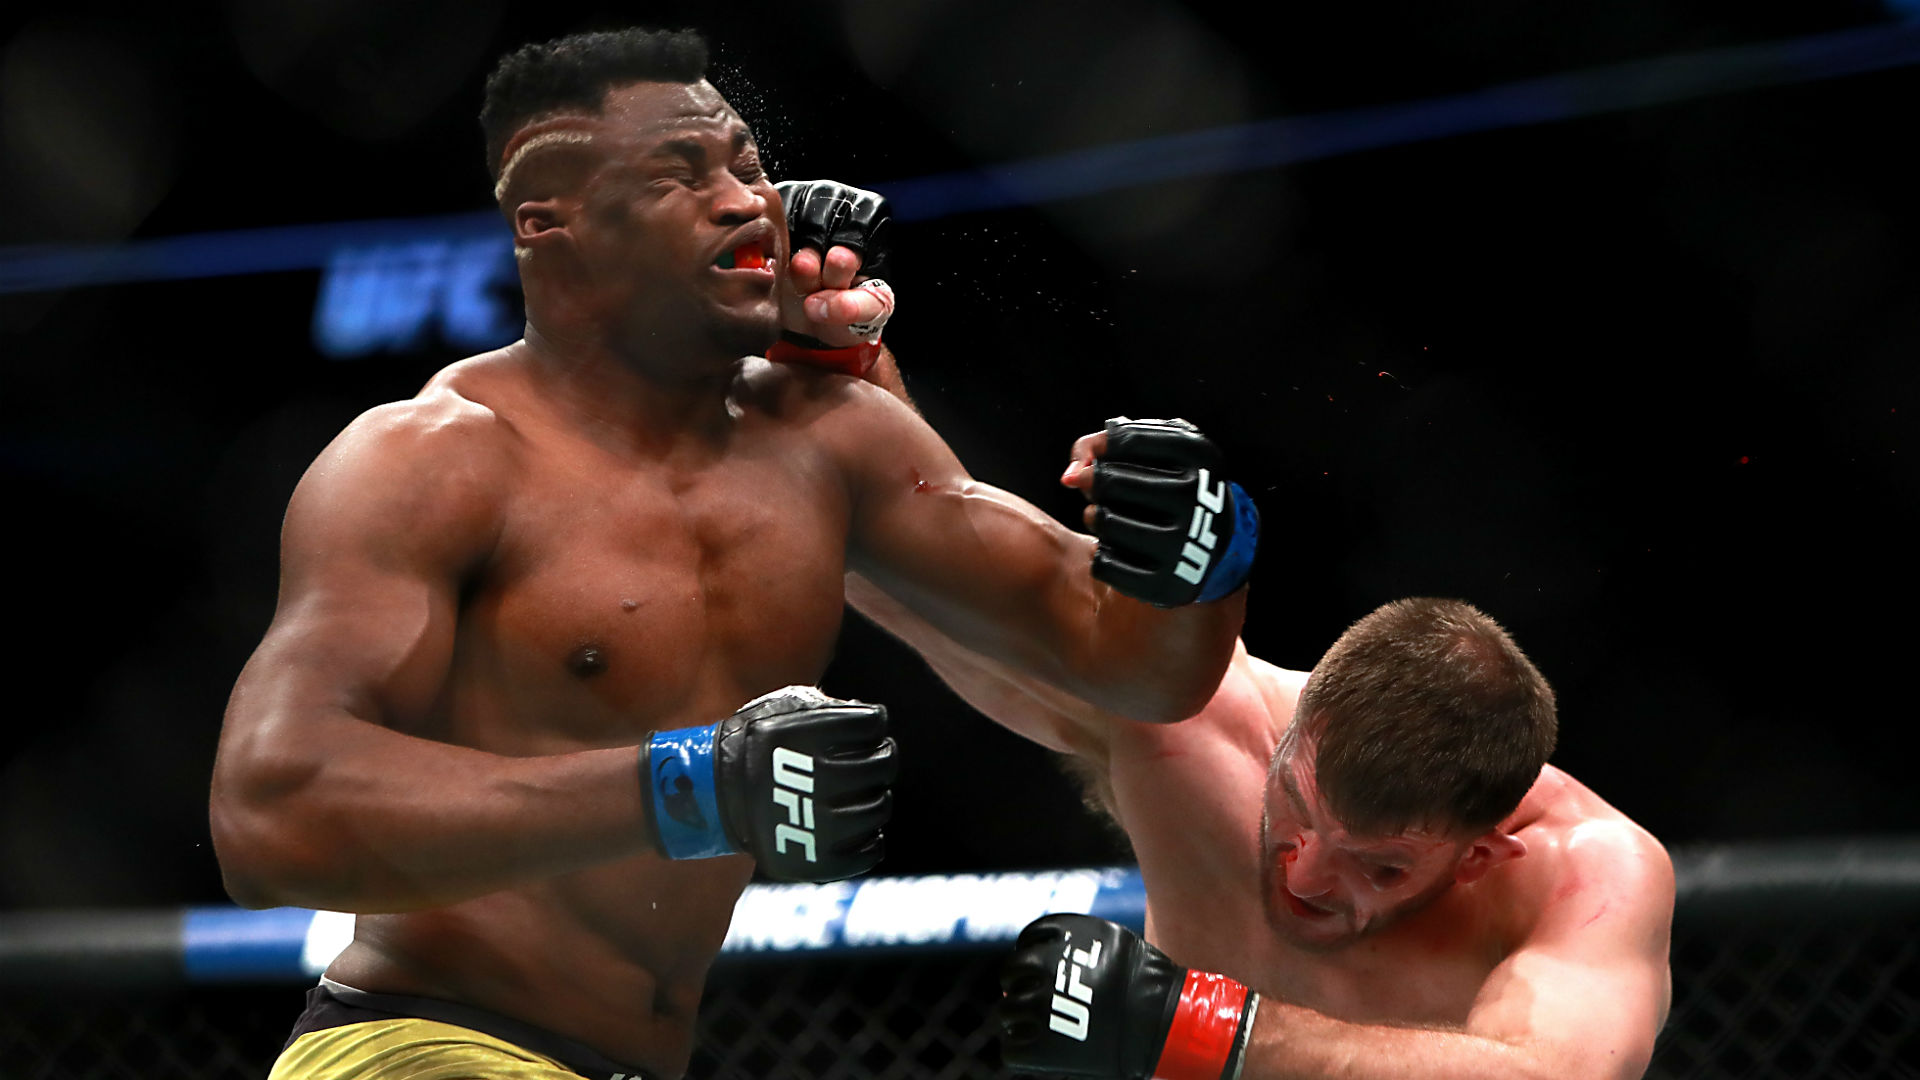 Francis Ngannou Says He Learn From His Defeat at UFC 220